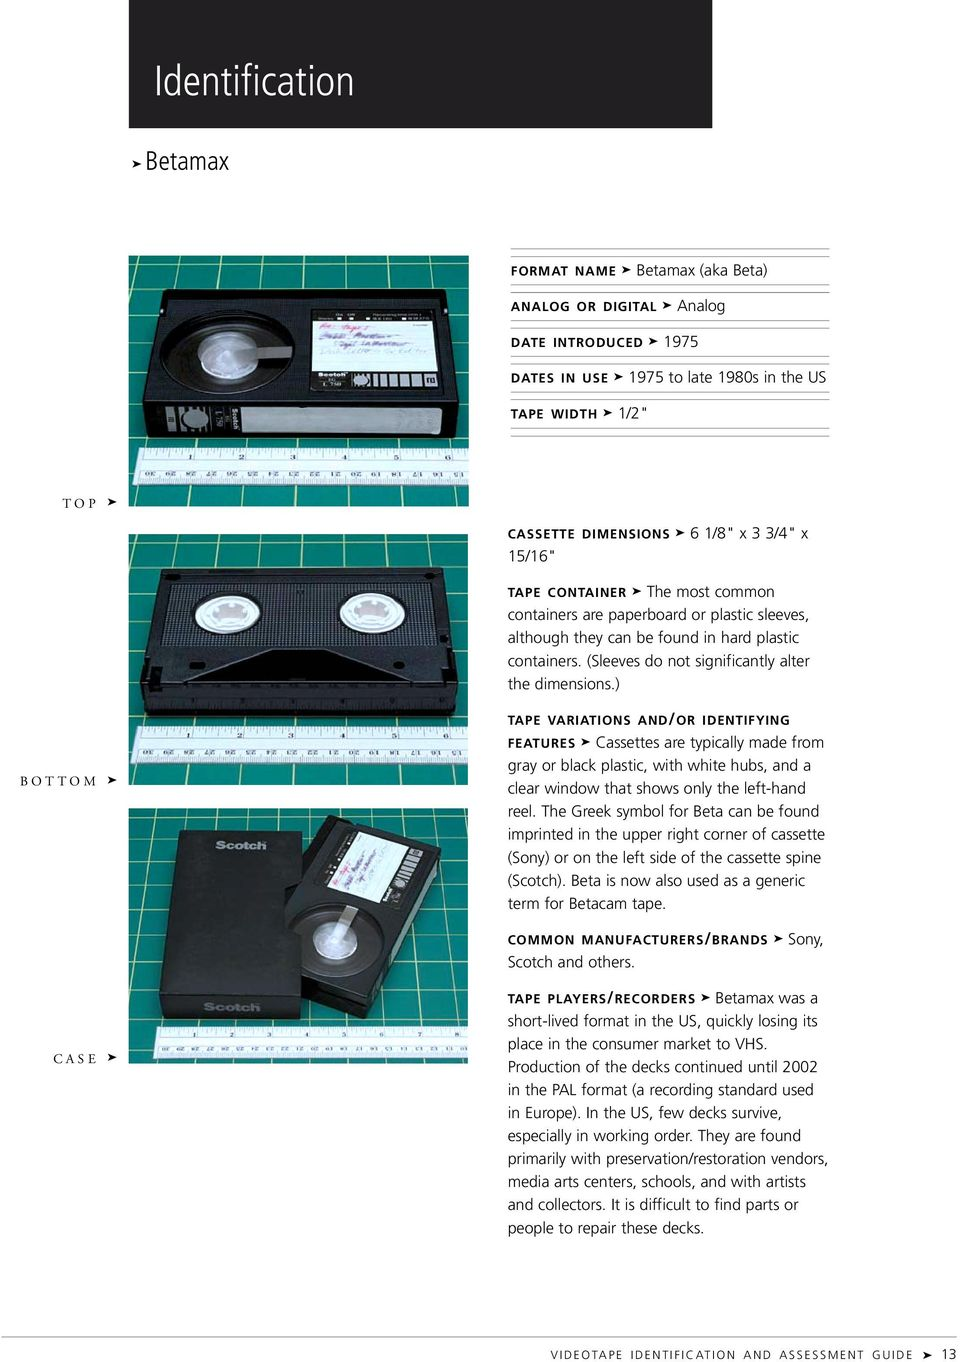 ) BOTTOM CASE TAPE VARIATIONS AND/OR IDENTIFYING FEATURES Cassettes are typically made from gray or black plastic, with white hubs, and a clear window that shows only the left-hand reel.